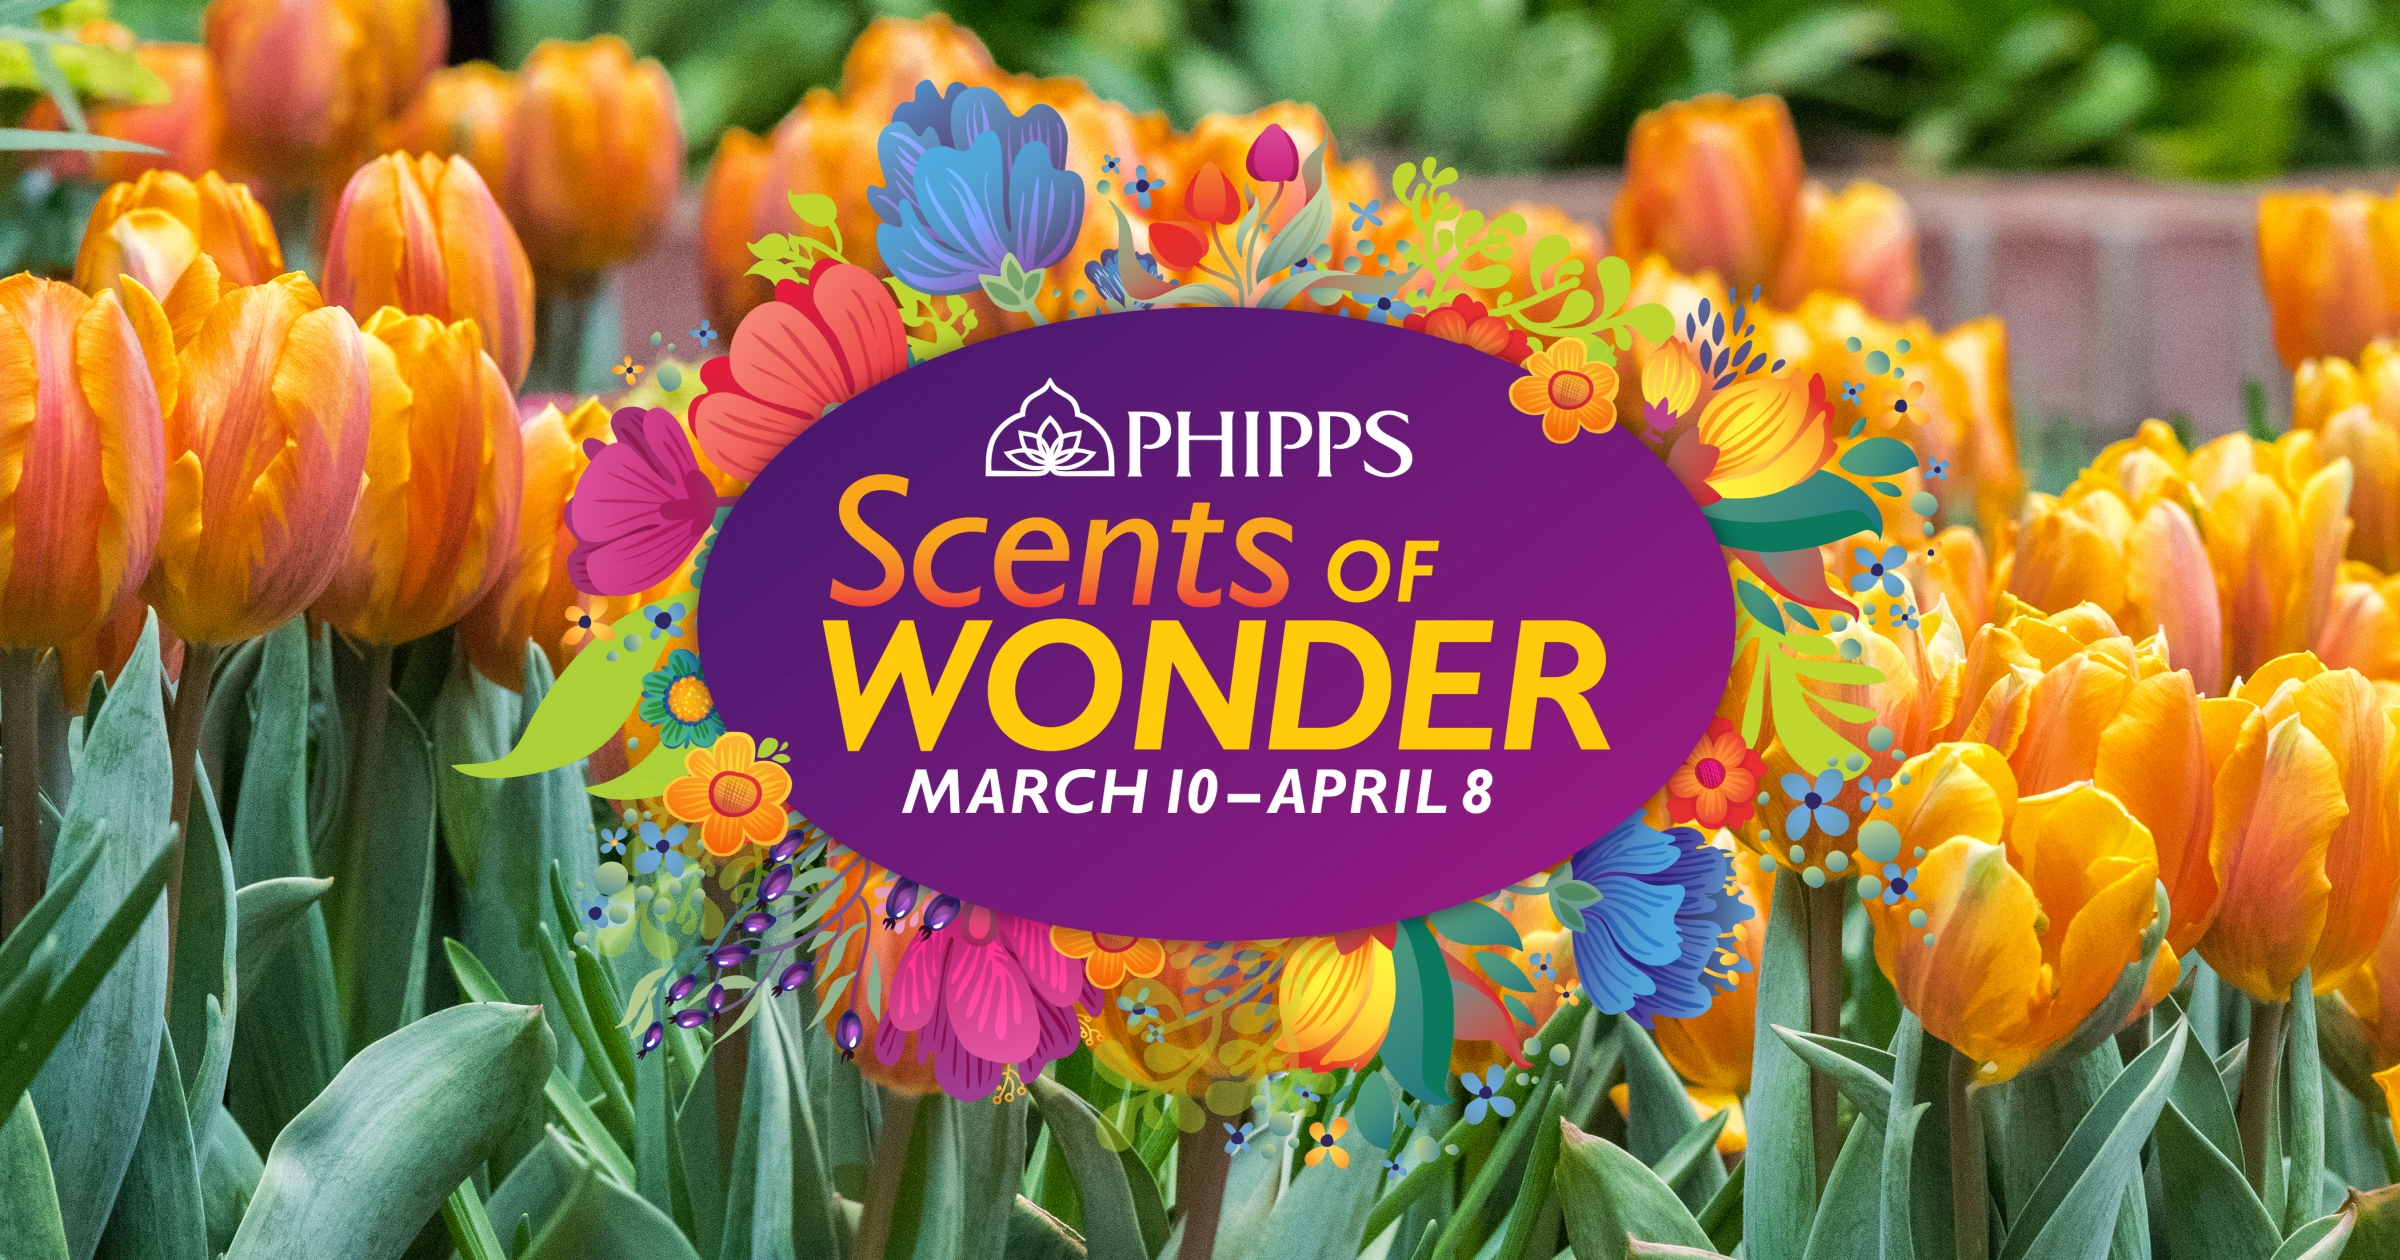 Get Nose To Petal At Phipps Conservatorys New Spring Flower Show